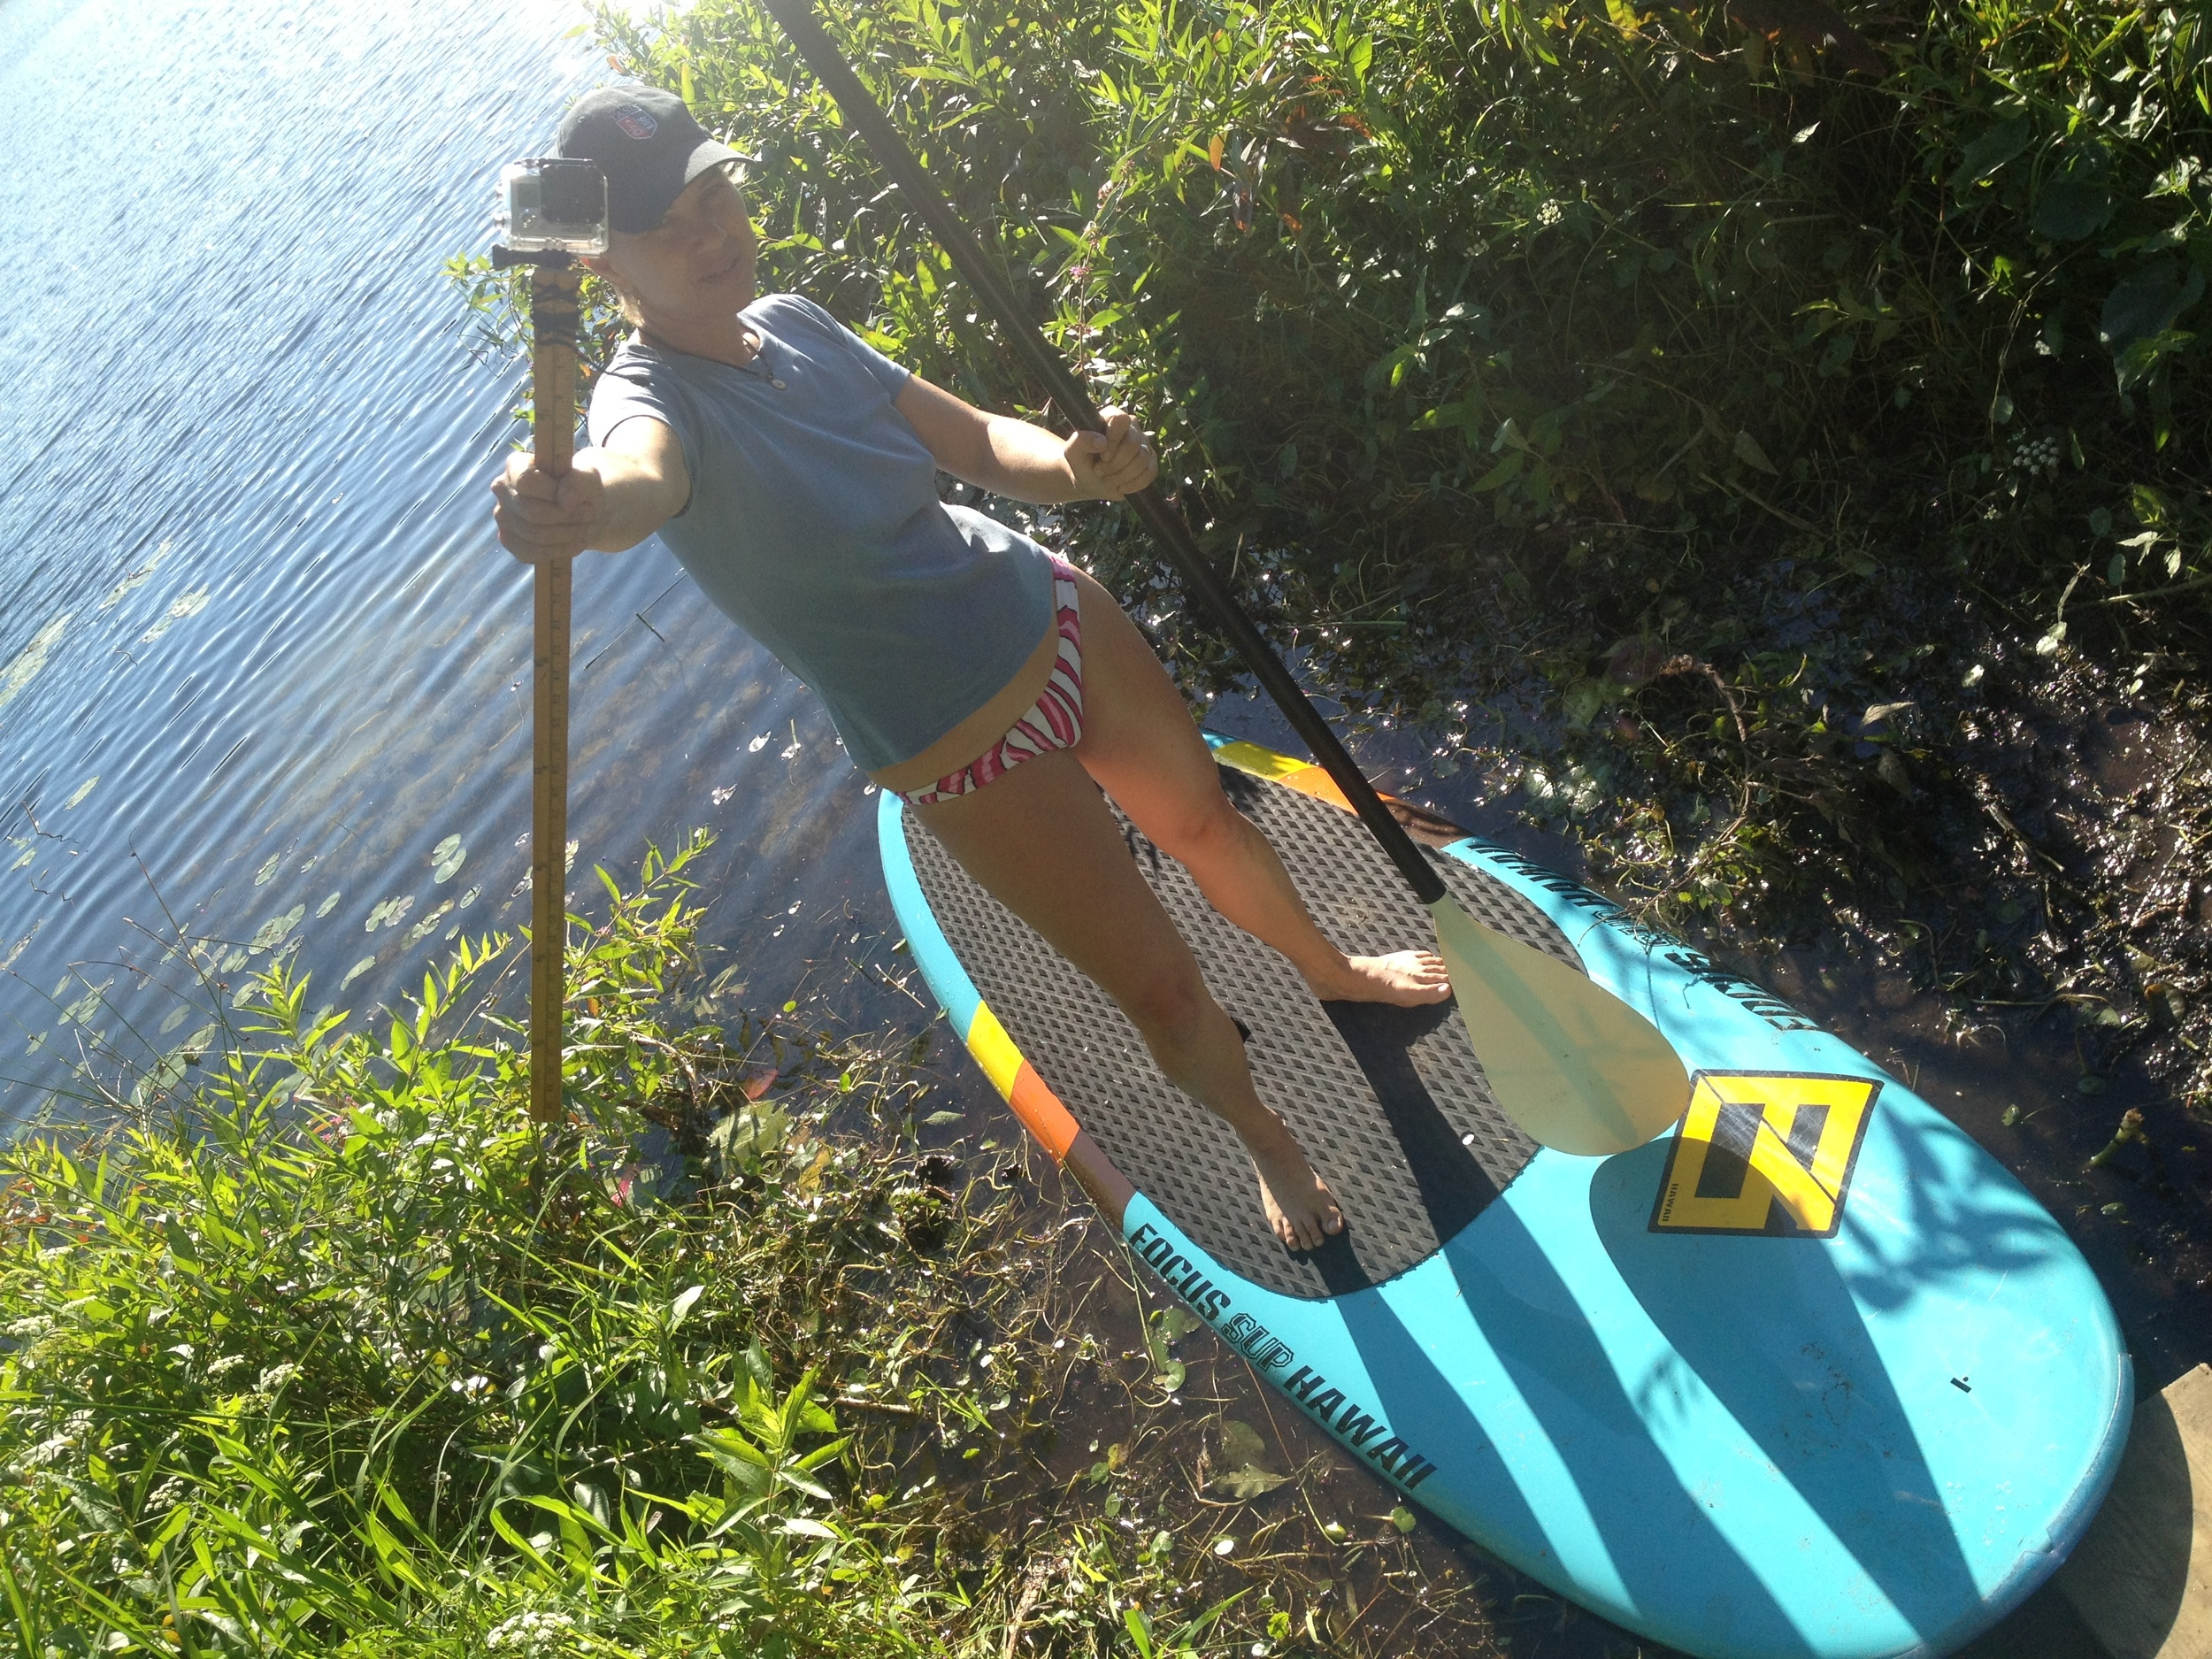 Madeleine on paddle board with Go Pro on a stick for Crystal Lake shoot